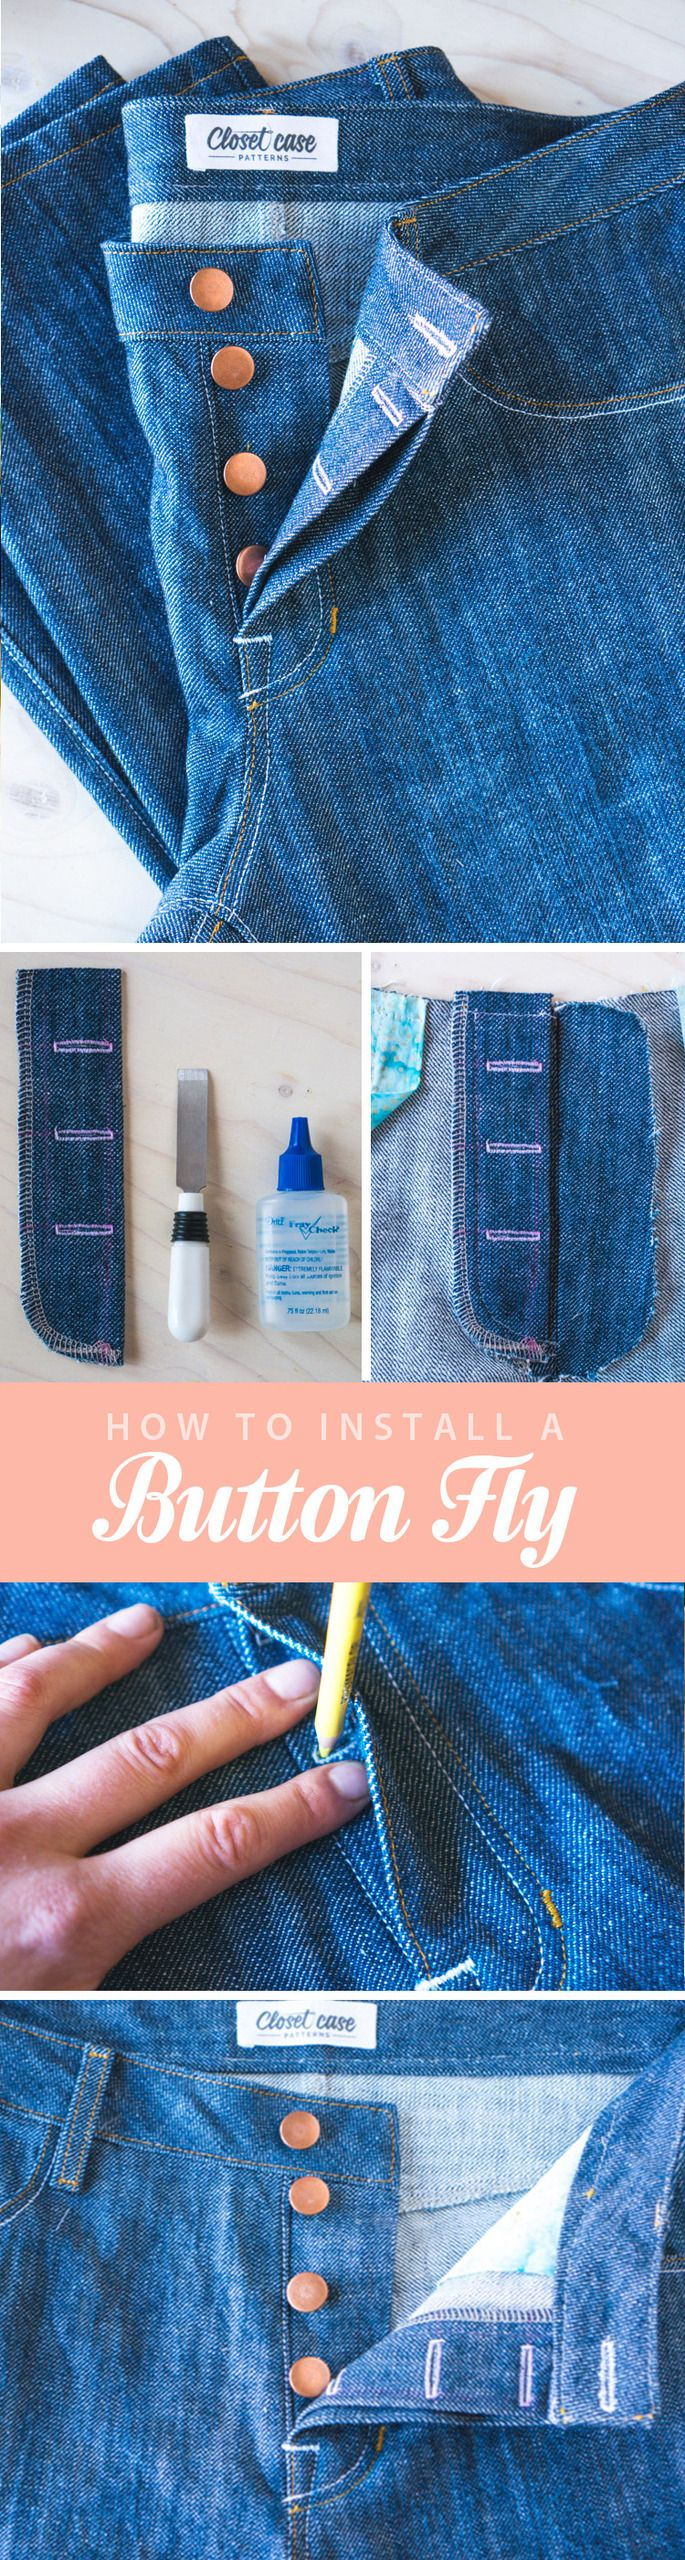 Step by step instructions for installing a button fly in jeans! // Closet Case Files http://closetcasefiles.com/install-button-fly/